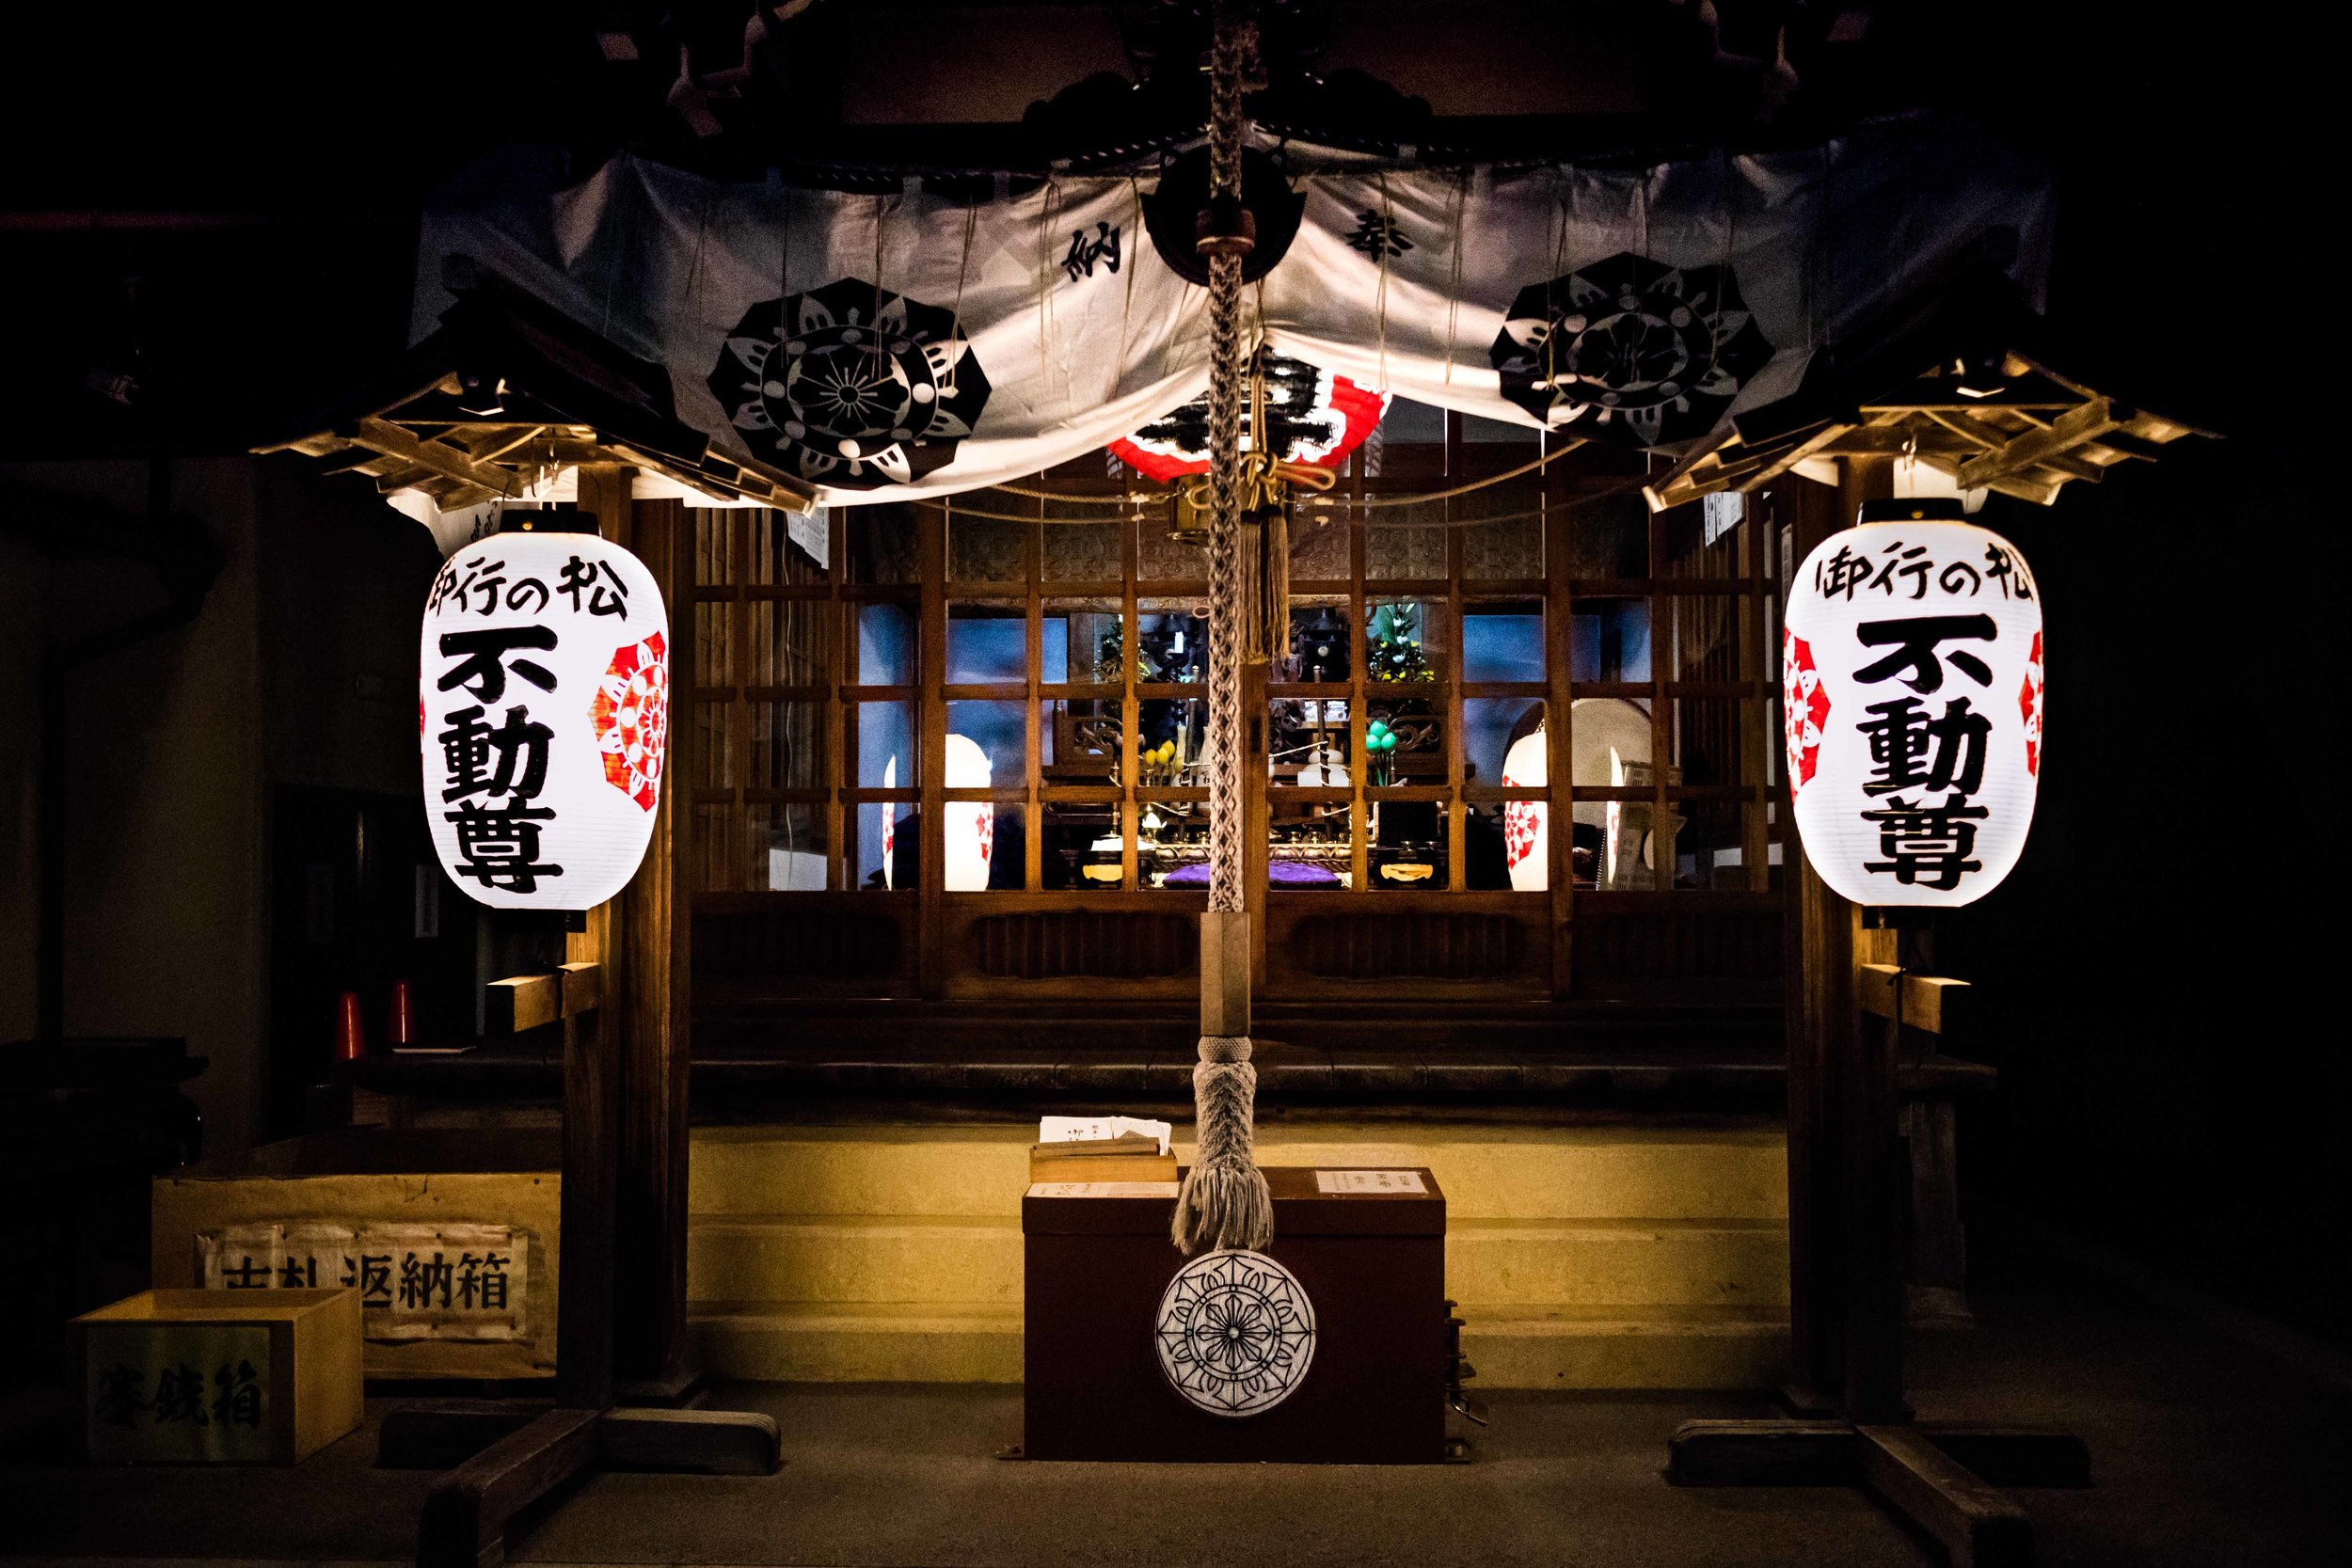 One of many shrines in Tokyo.